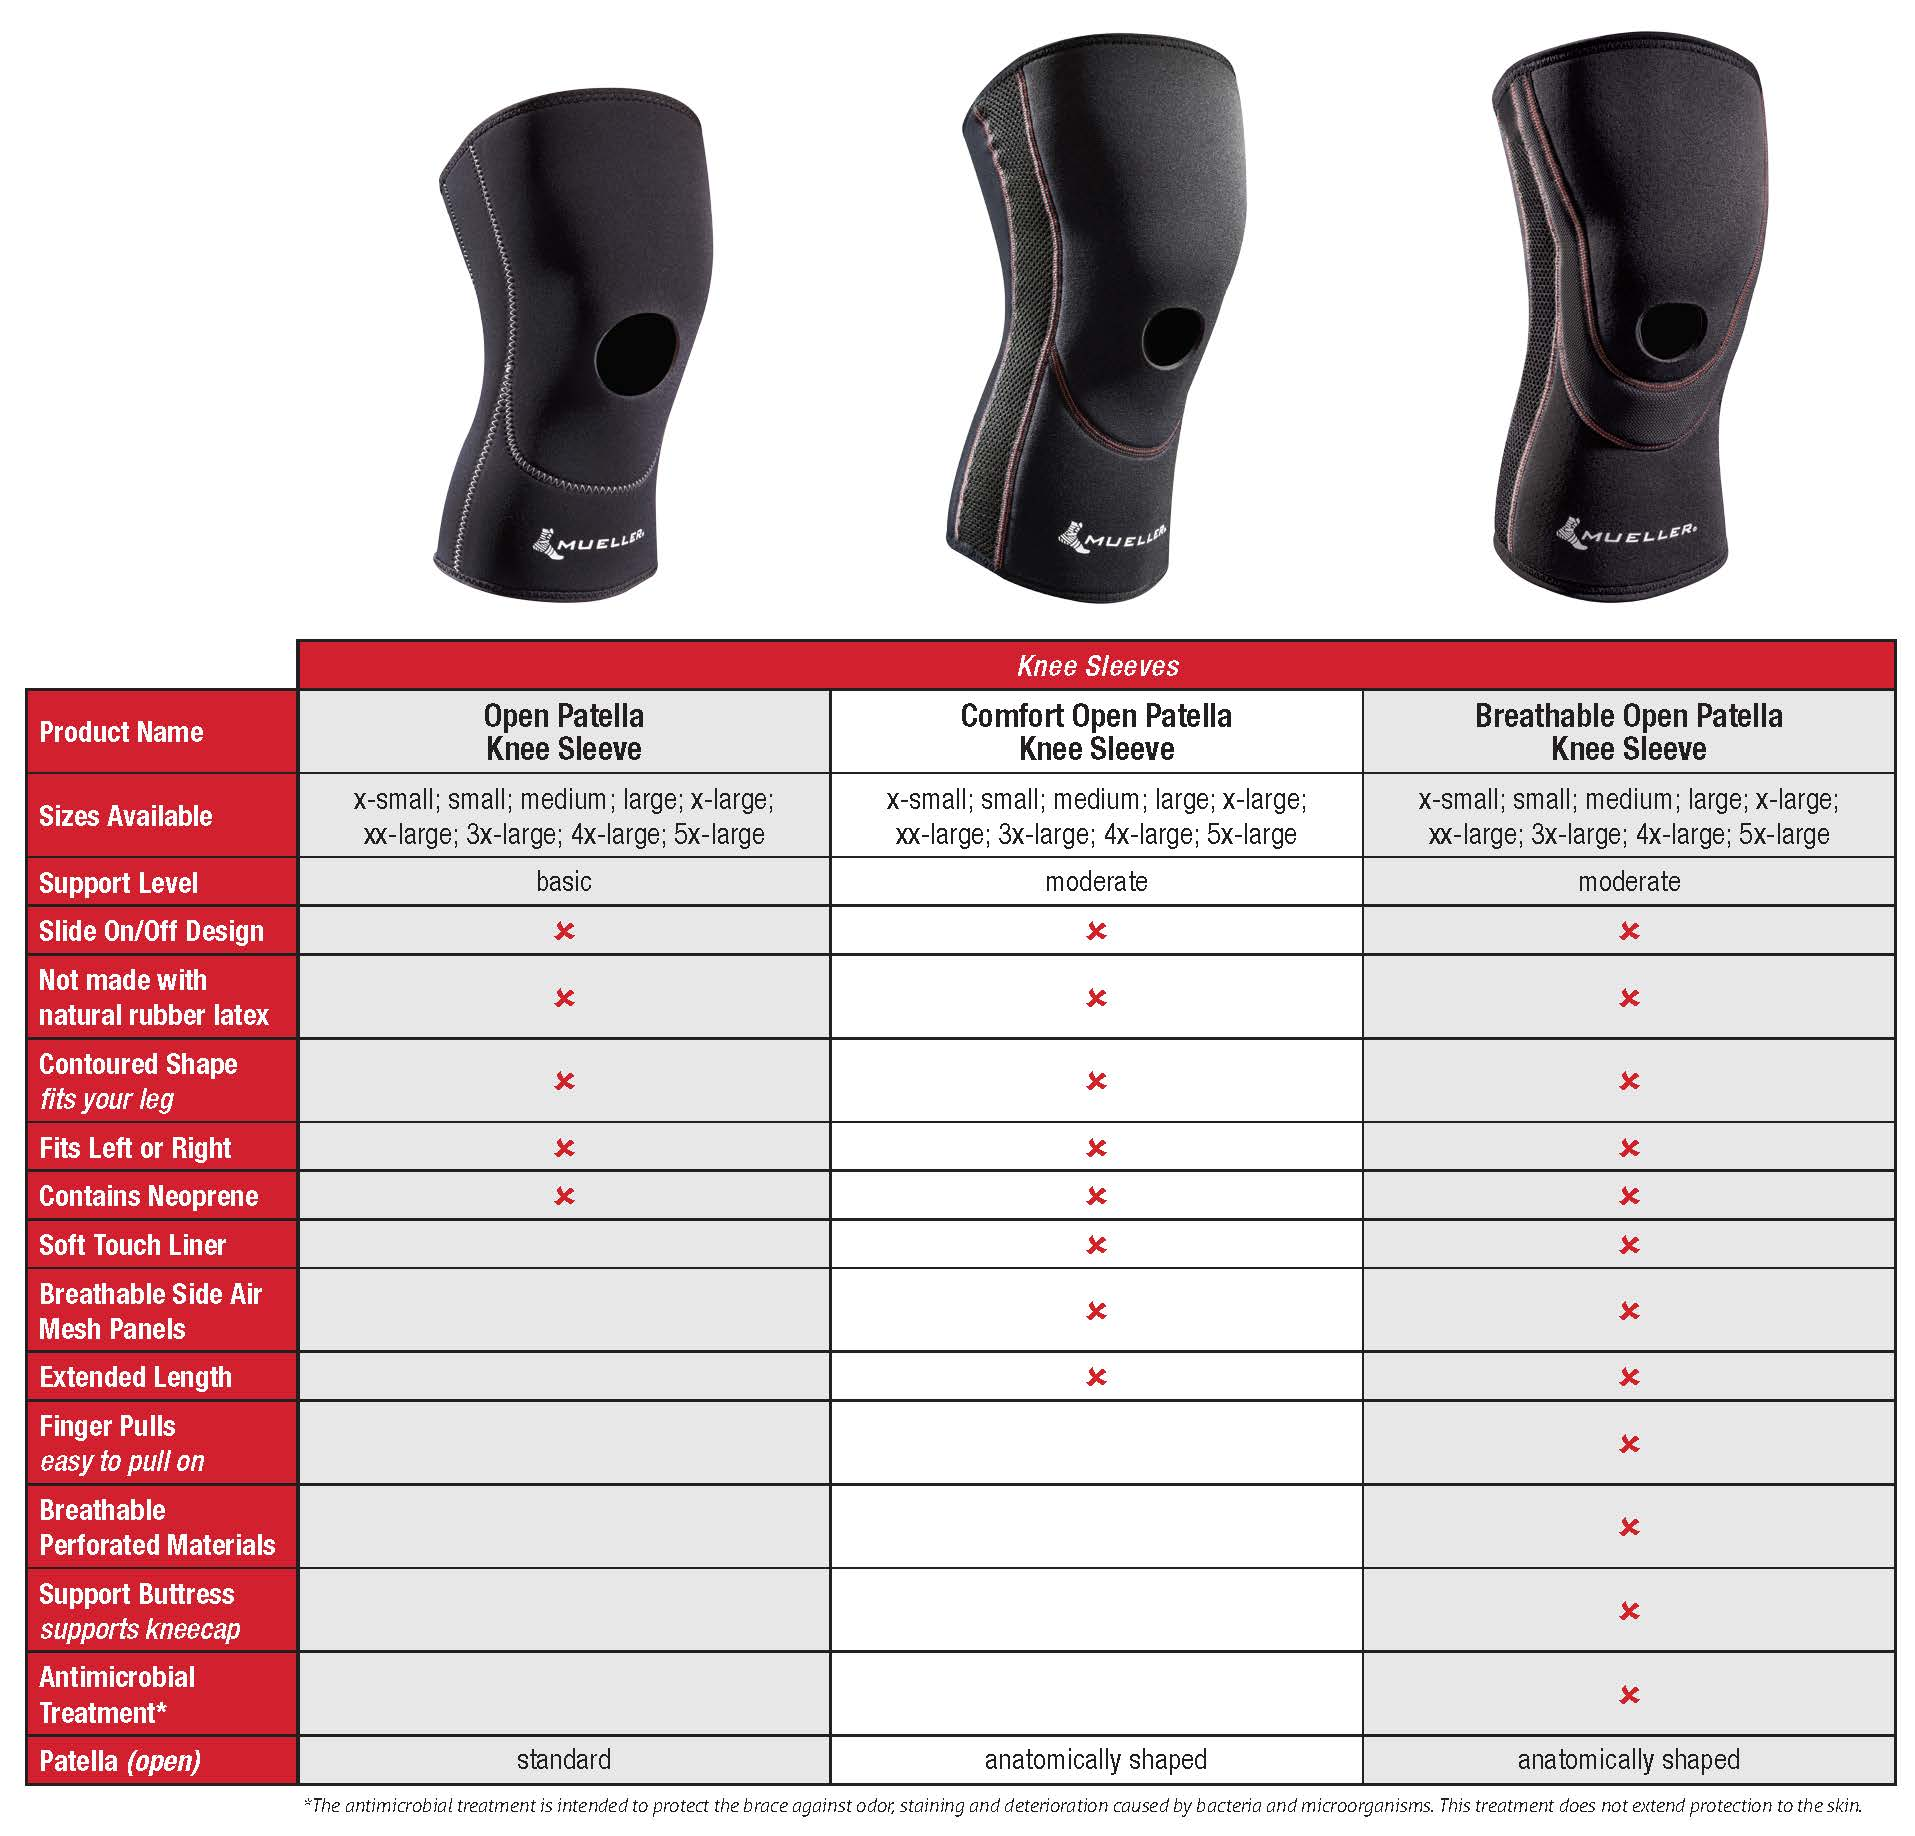 Breathable Open Patella Knee Sleeve Comparison Chart